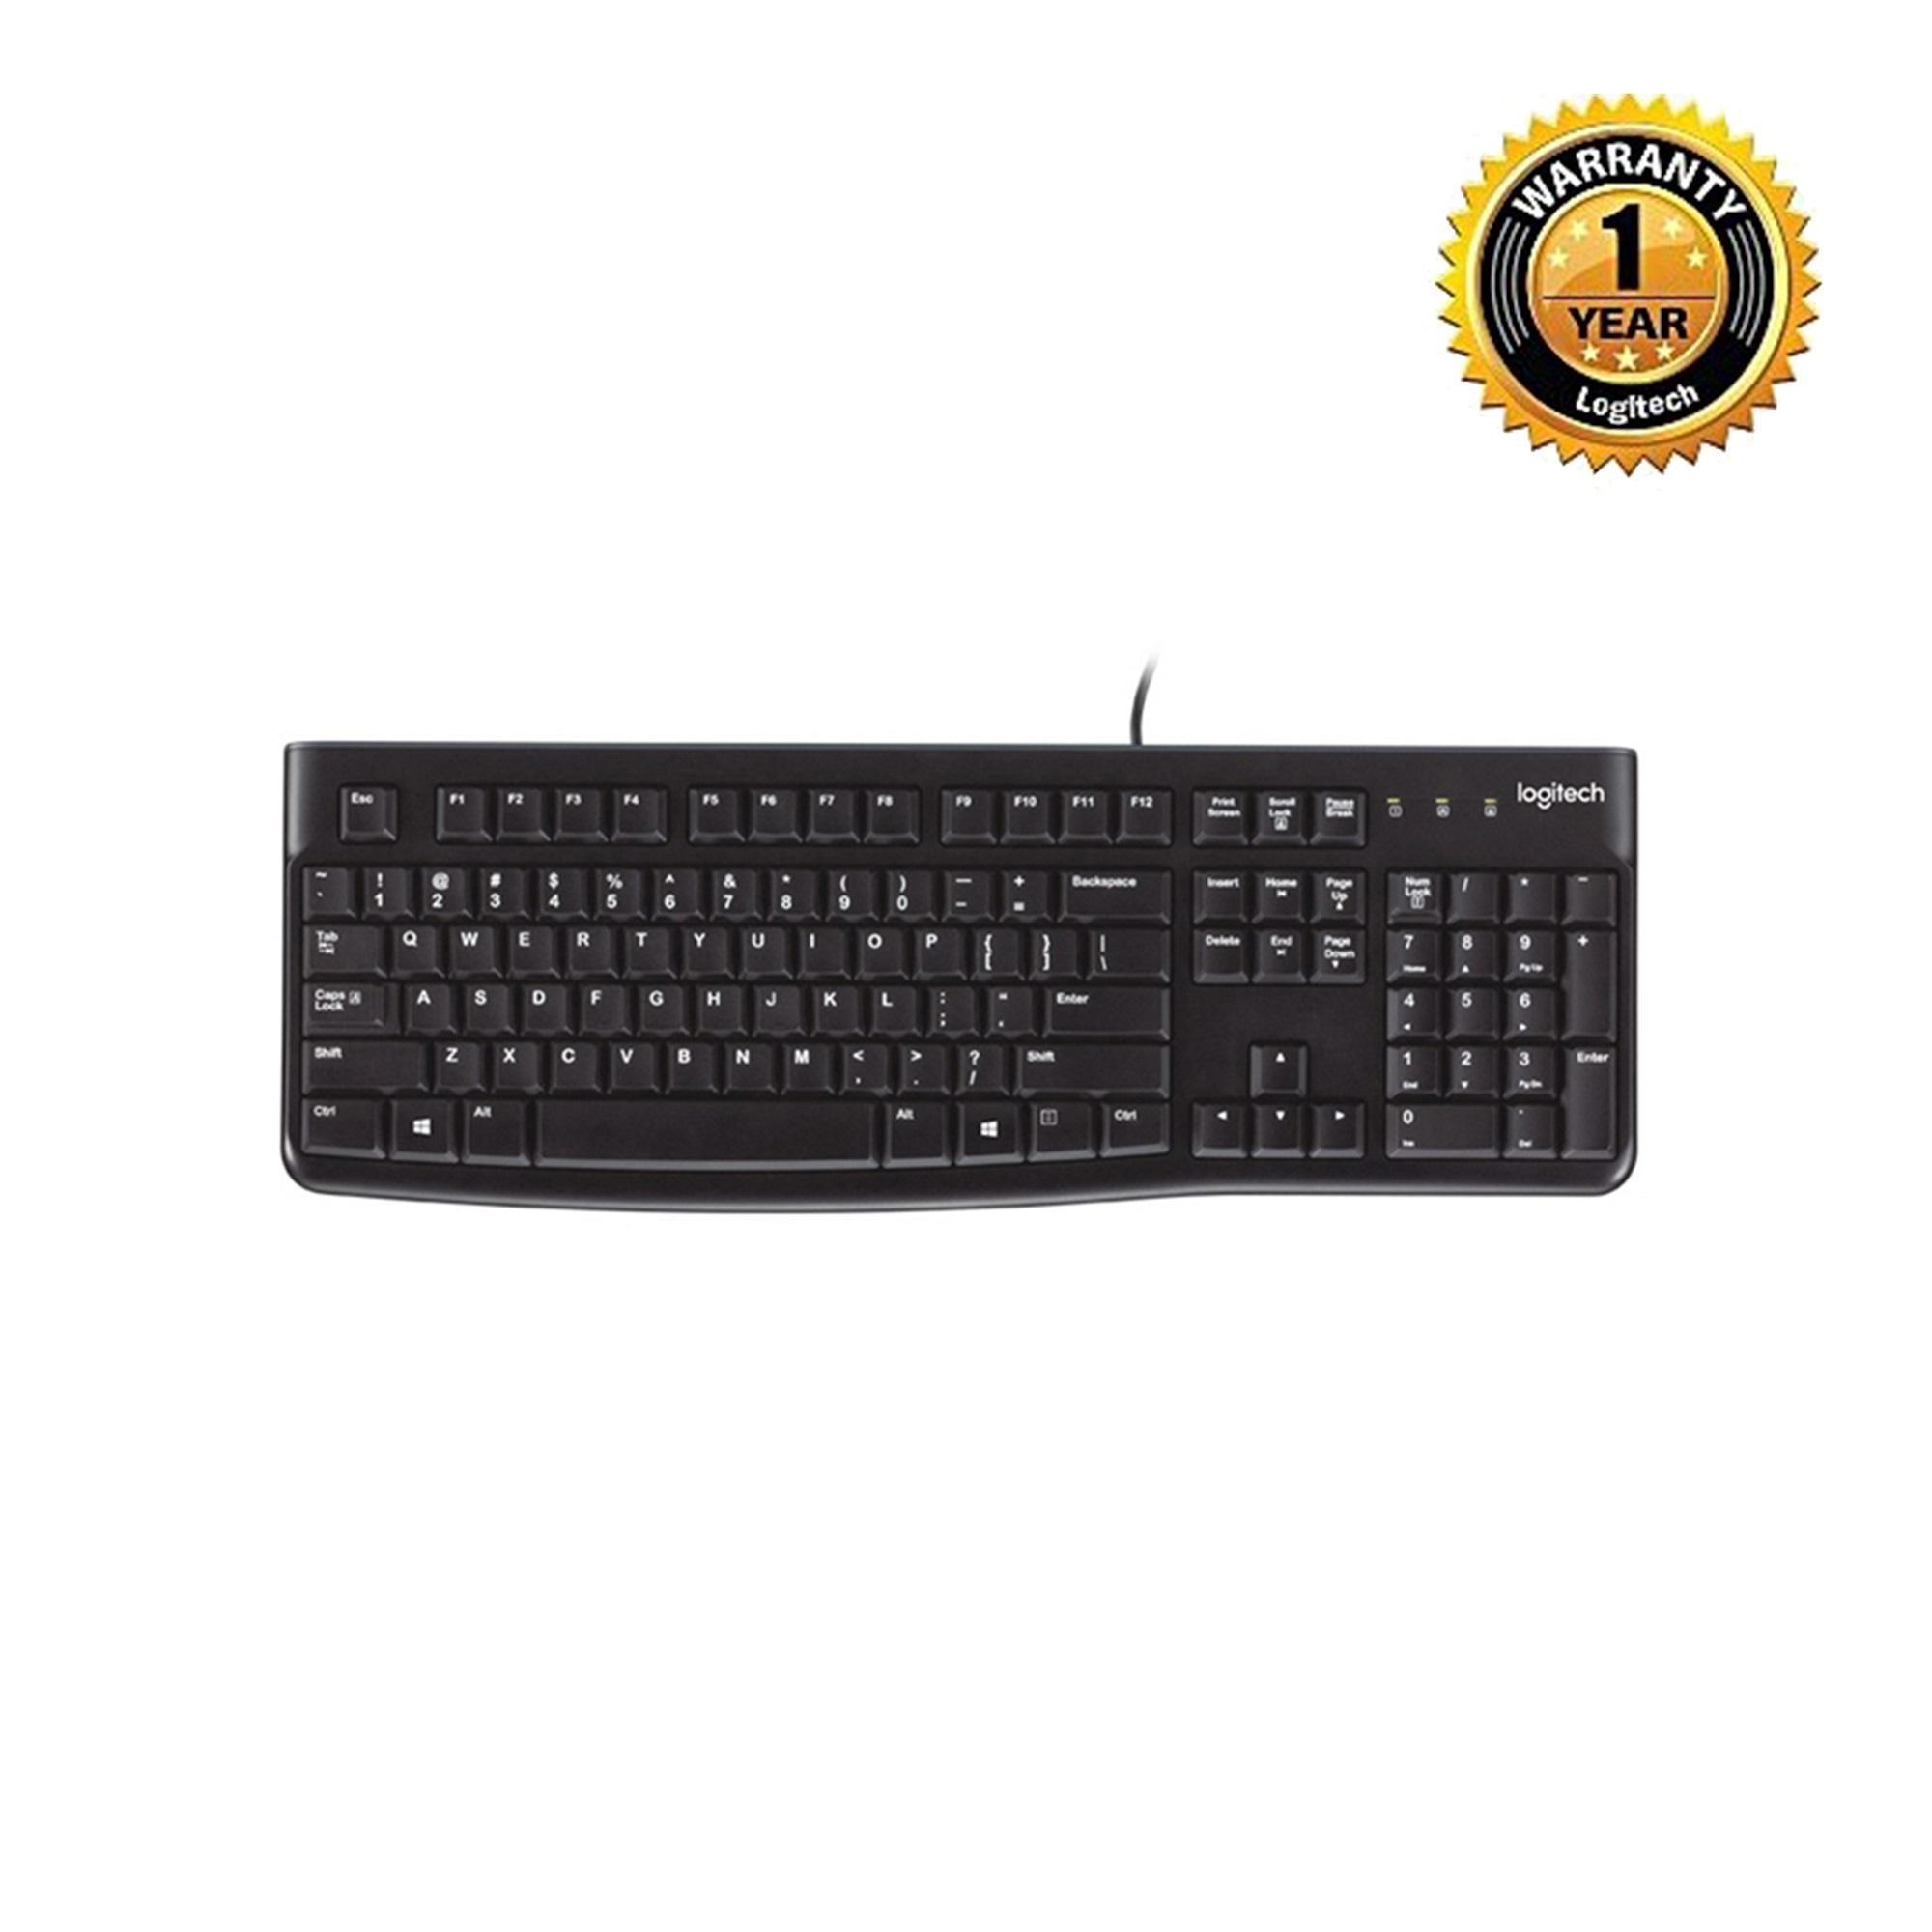 e53cfc29a8d Keyboard Price In Bangladesh - Buy Keyboards Online At Daraz.com.bd